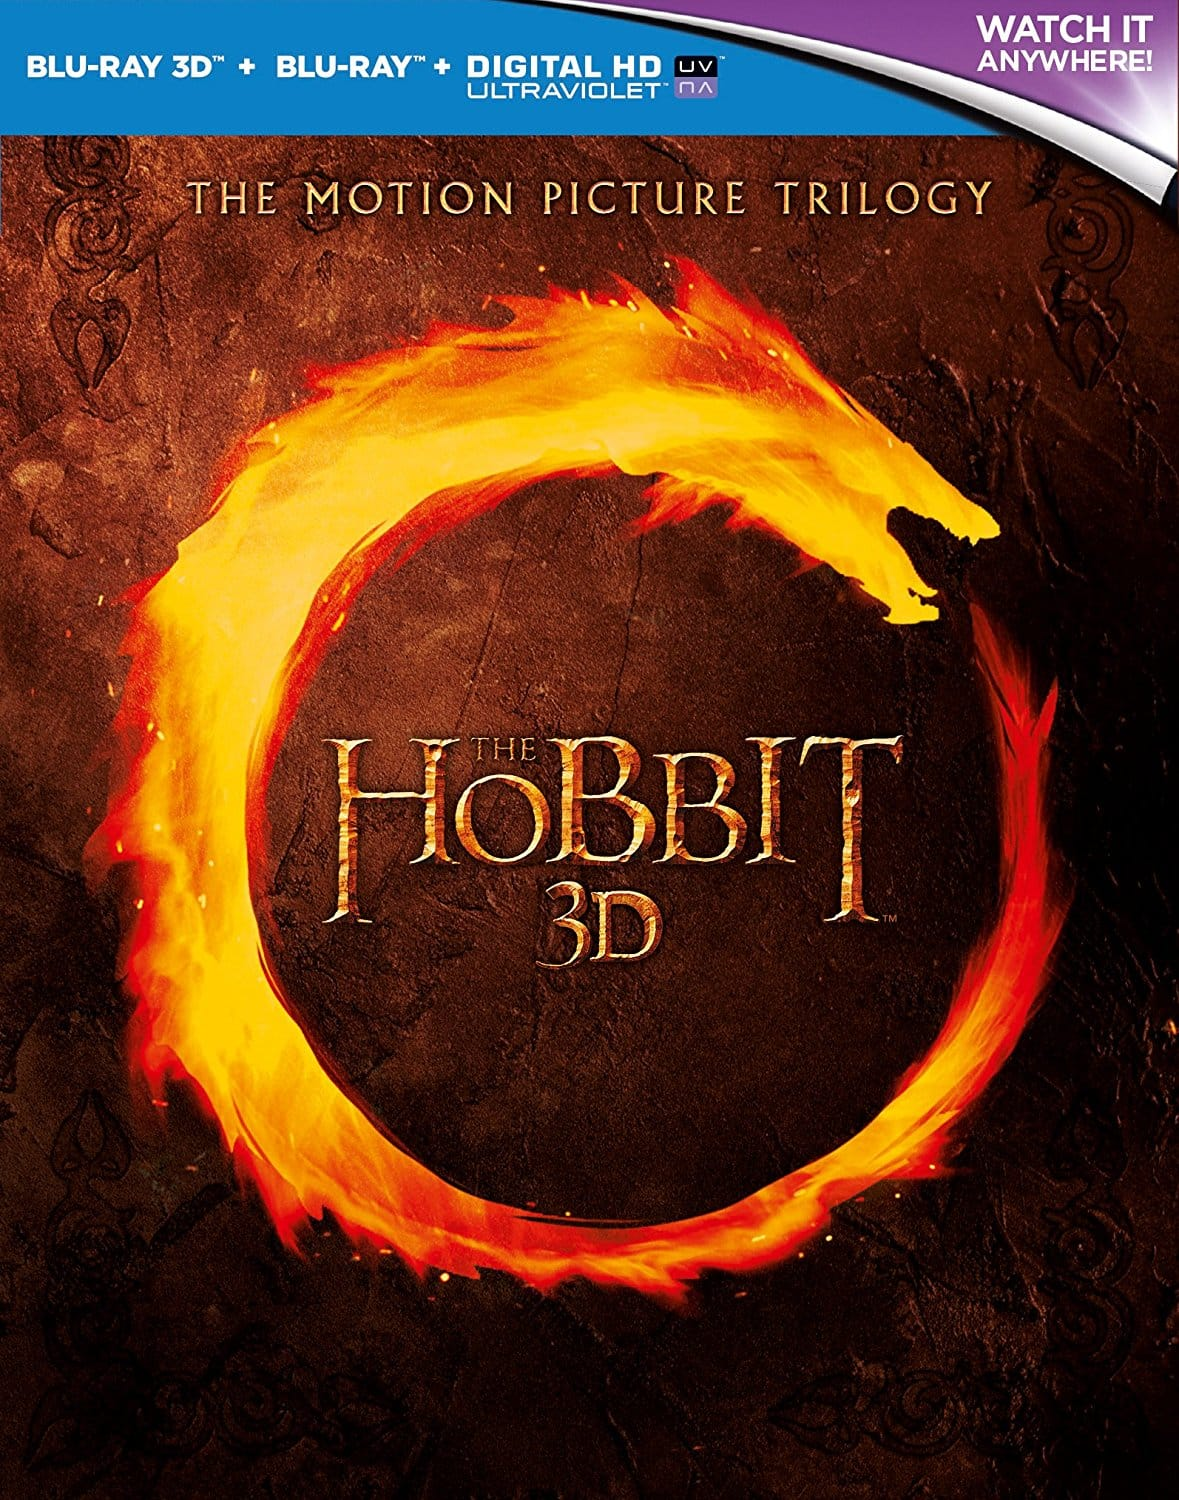 Region Free: The Hobbit Trilogy Non-Extended Version (Blu-ray 3D + Blu-ray + Digital HD) $20.80 Shipped